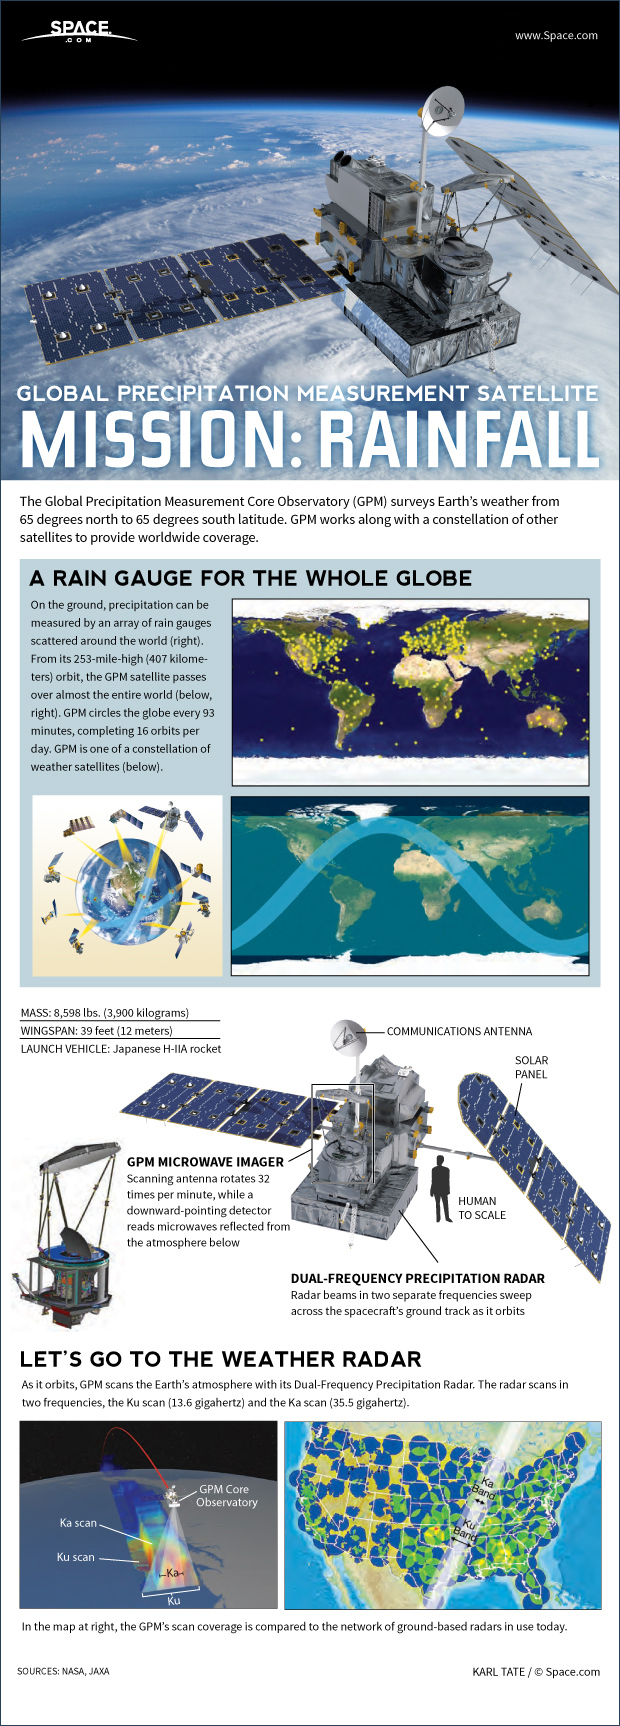 The Global Precipitation Measurement satellite explained.